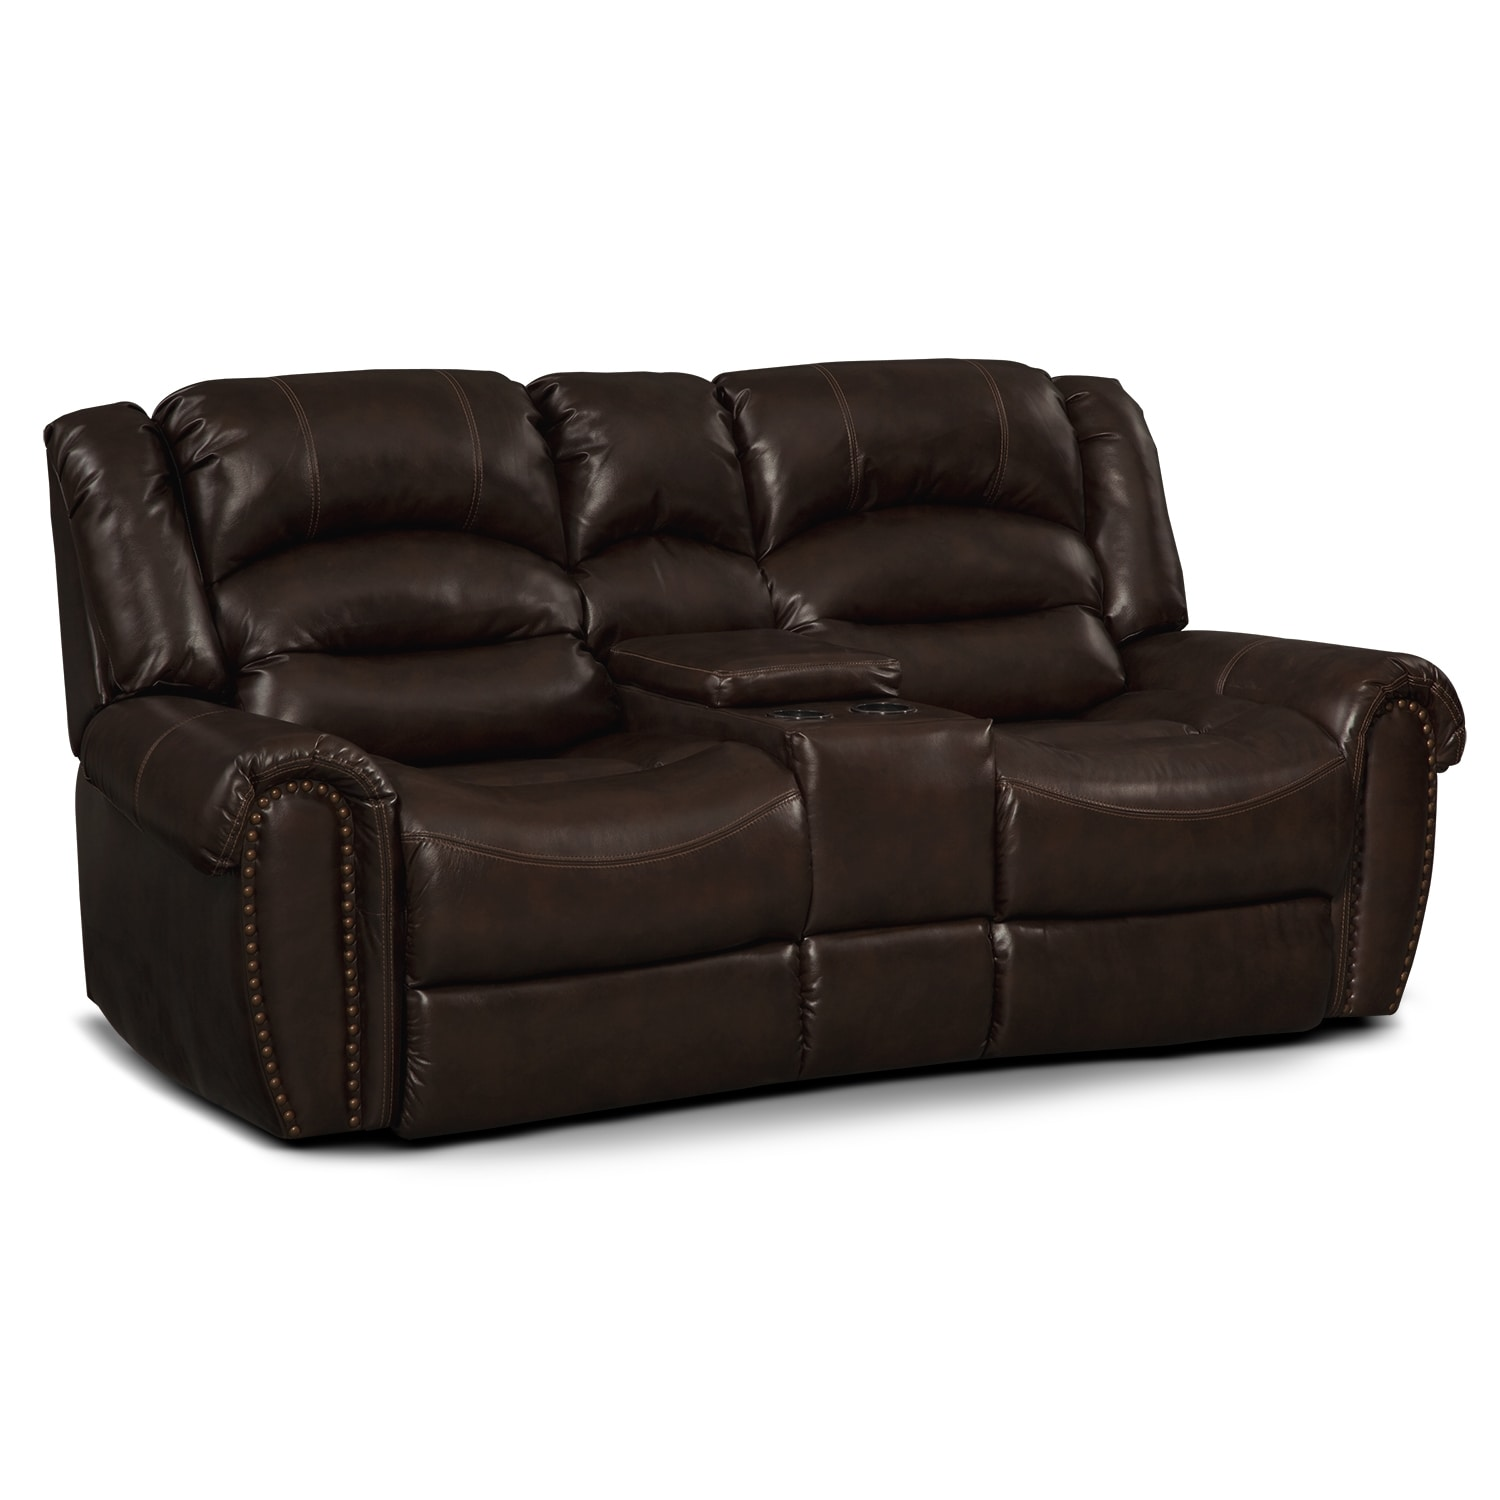 Galveston leather dual reclining loveseat value city furniture Loveseats that recline